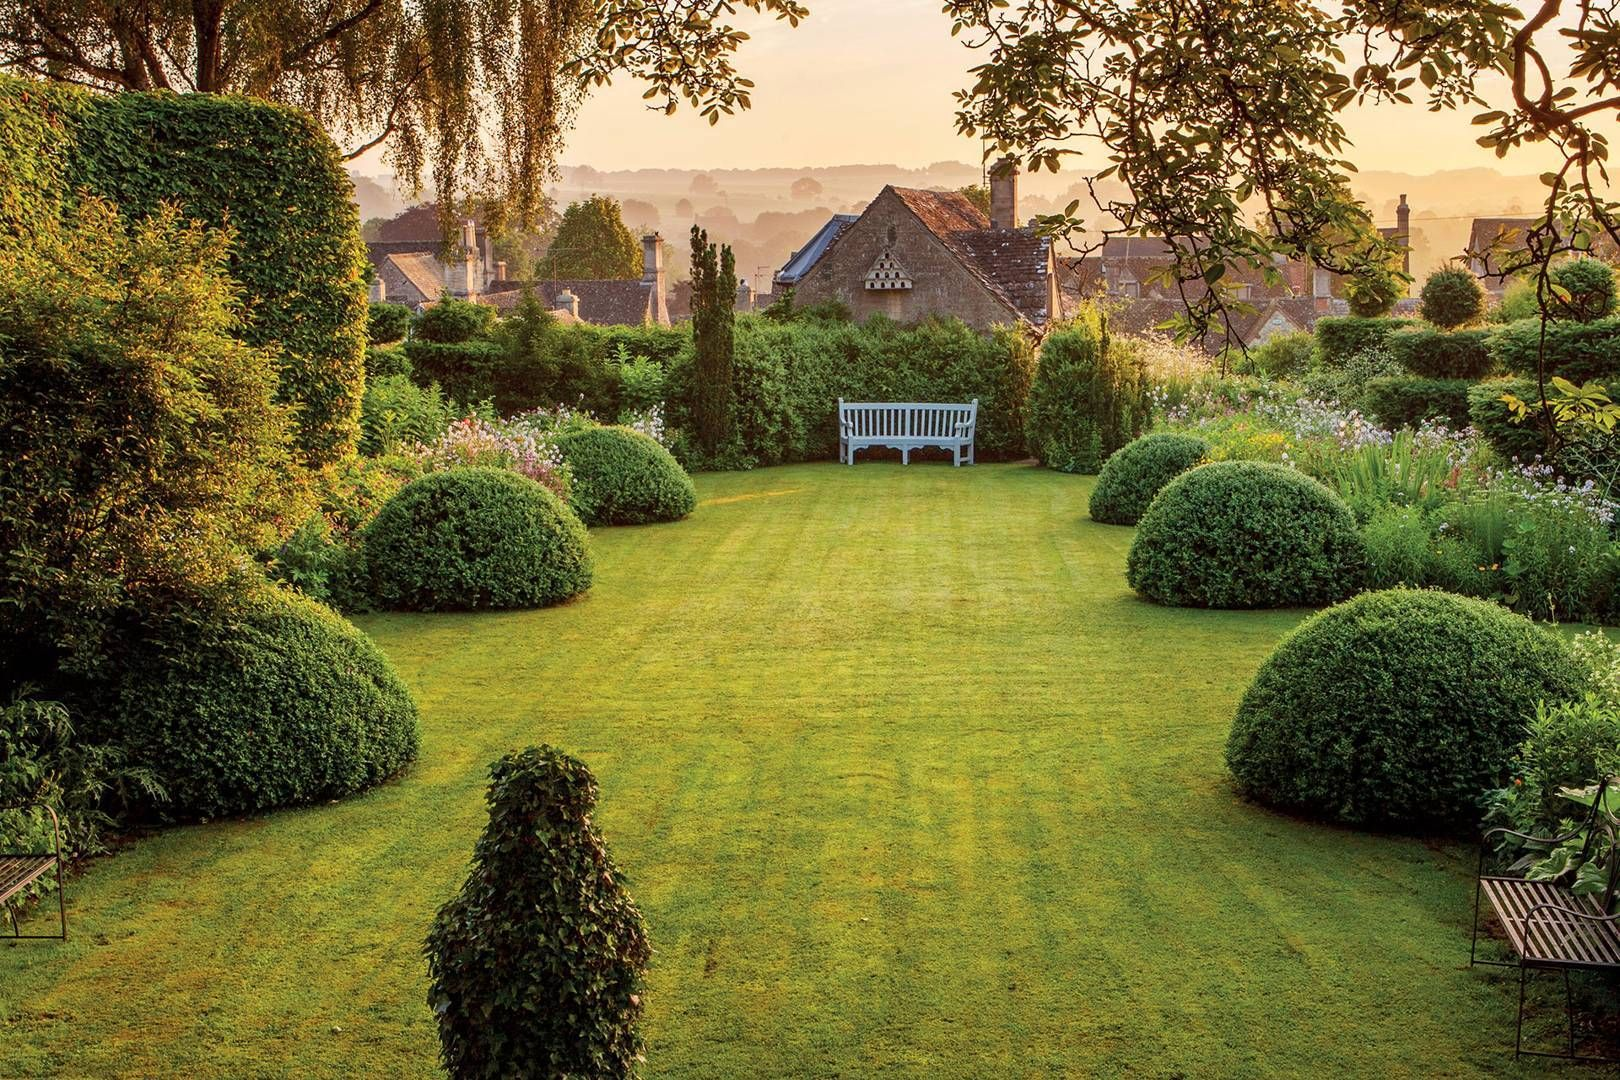 What Are Key Elements Of European Garden And Landscape Design Landscape Design English Garden European Garden